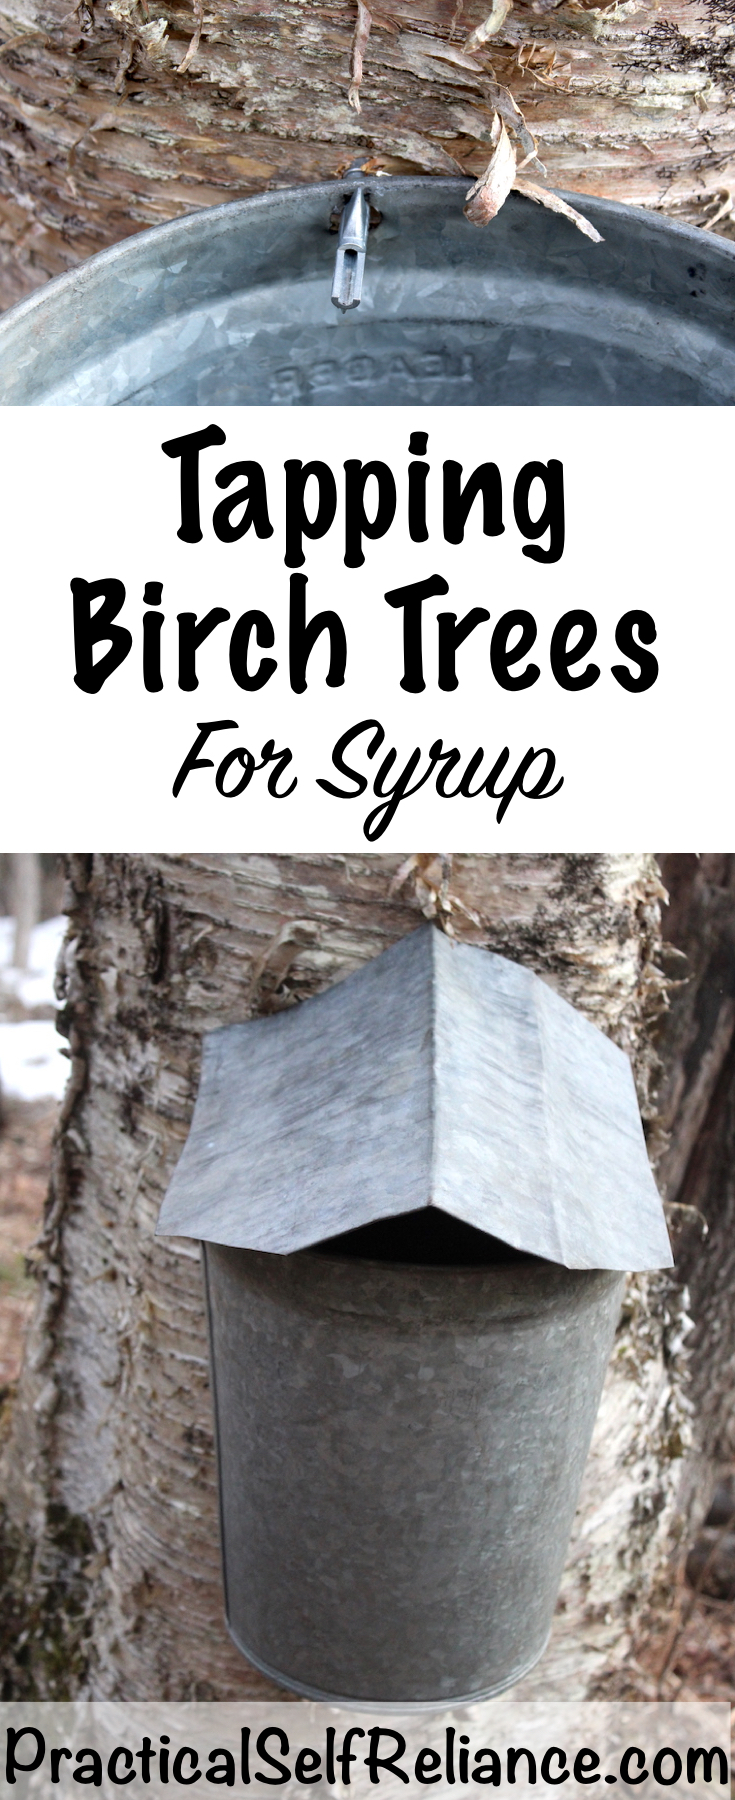 Tapping Birch Trees for Syrup #birchtrees #tappingtrees #makingsyrup #homestead #homesteading #selfsufficiency #selfreliant #preparedness #maplesyrup